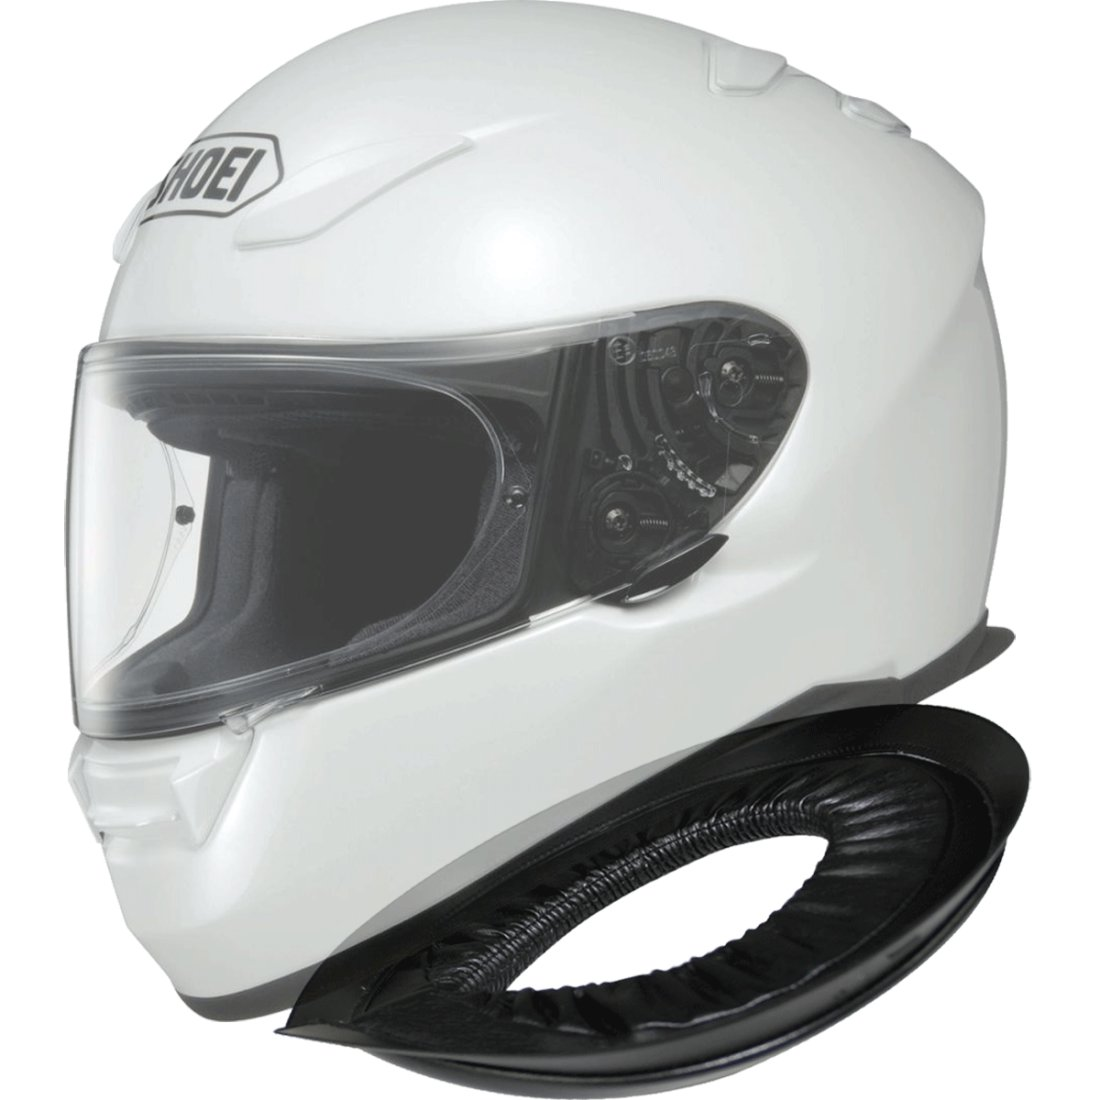 Shoei whisper strip